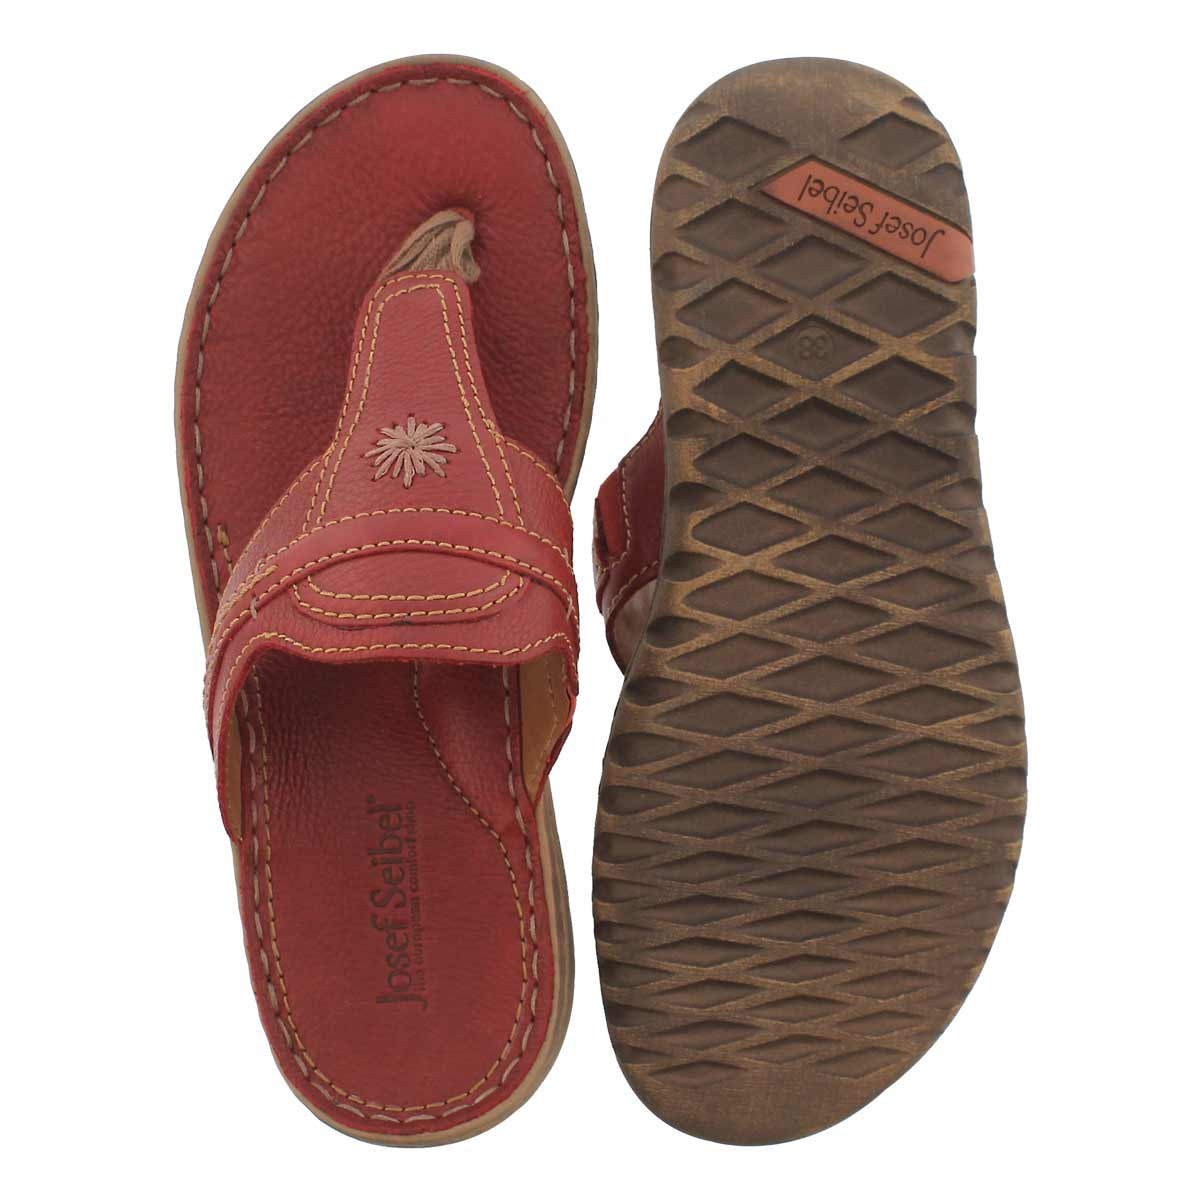 Lds Lucia 09 red casual thng sandal